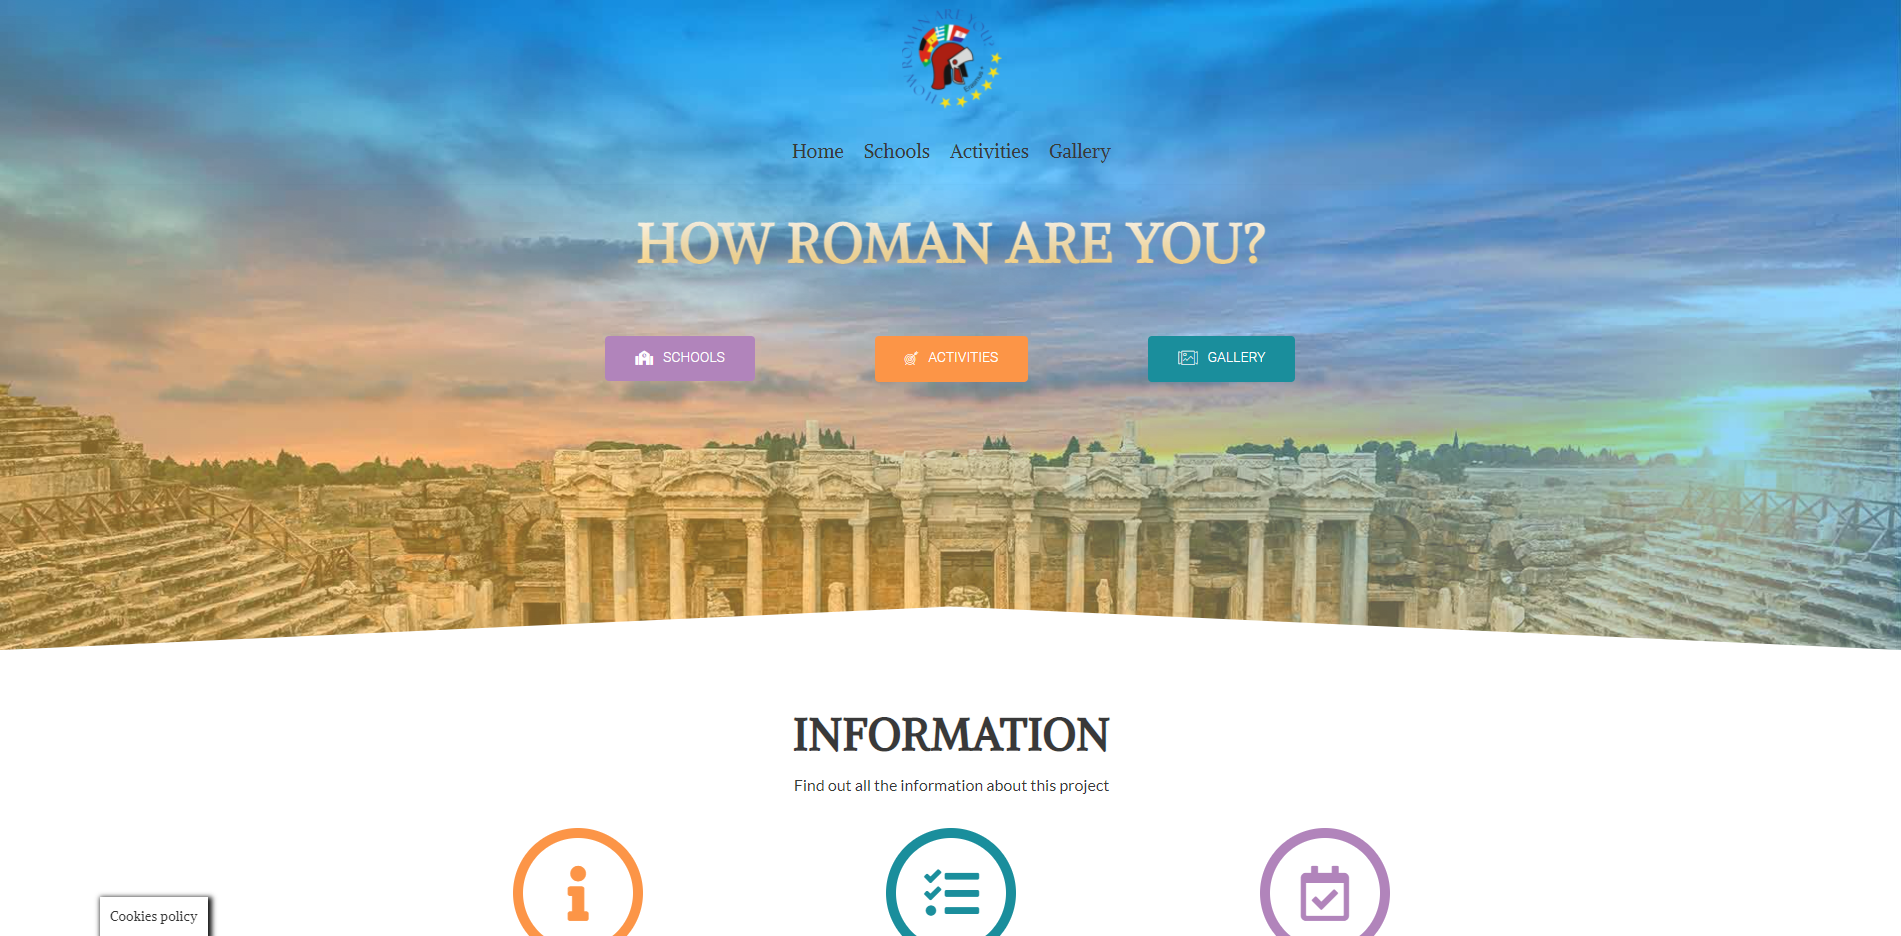 how_roman_are_you